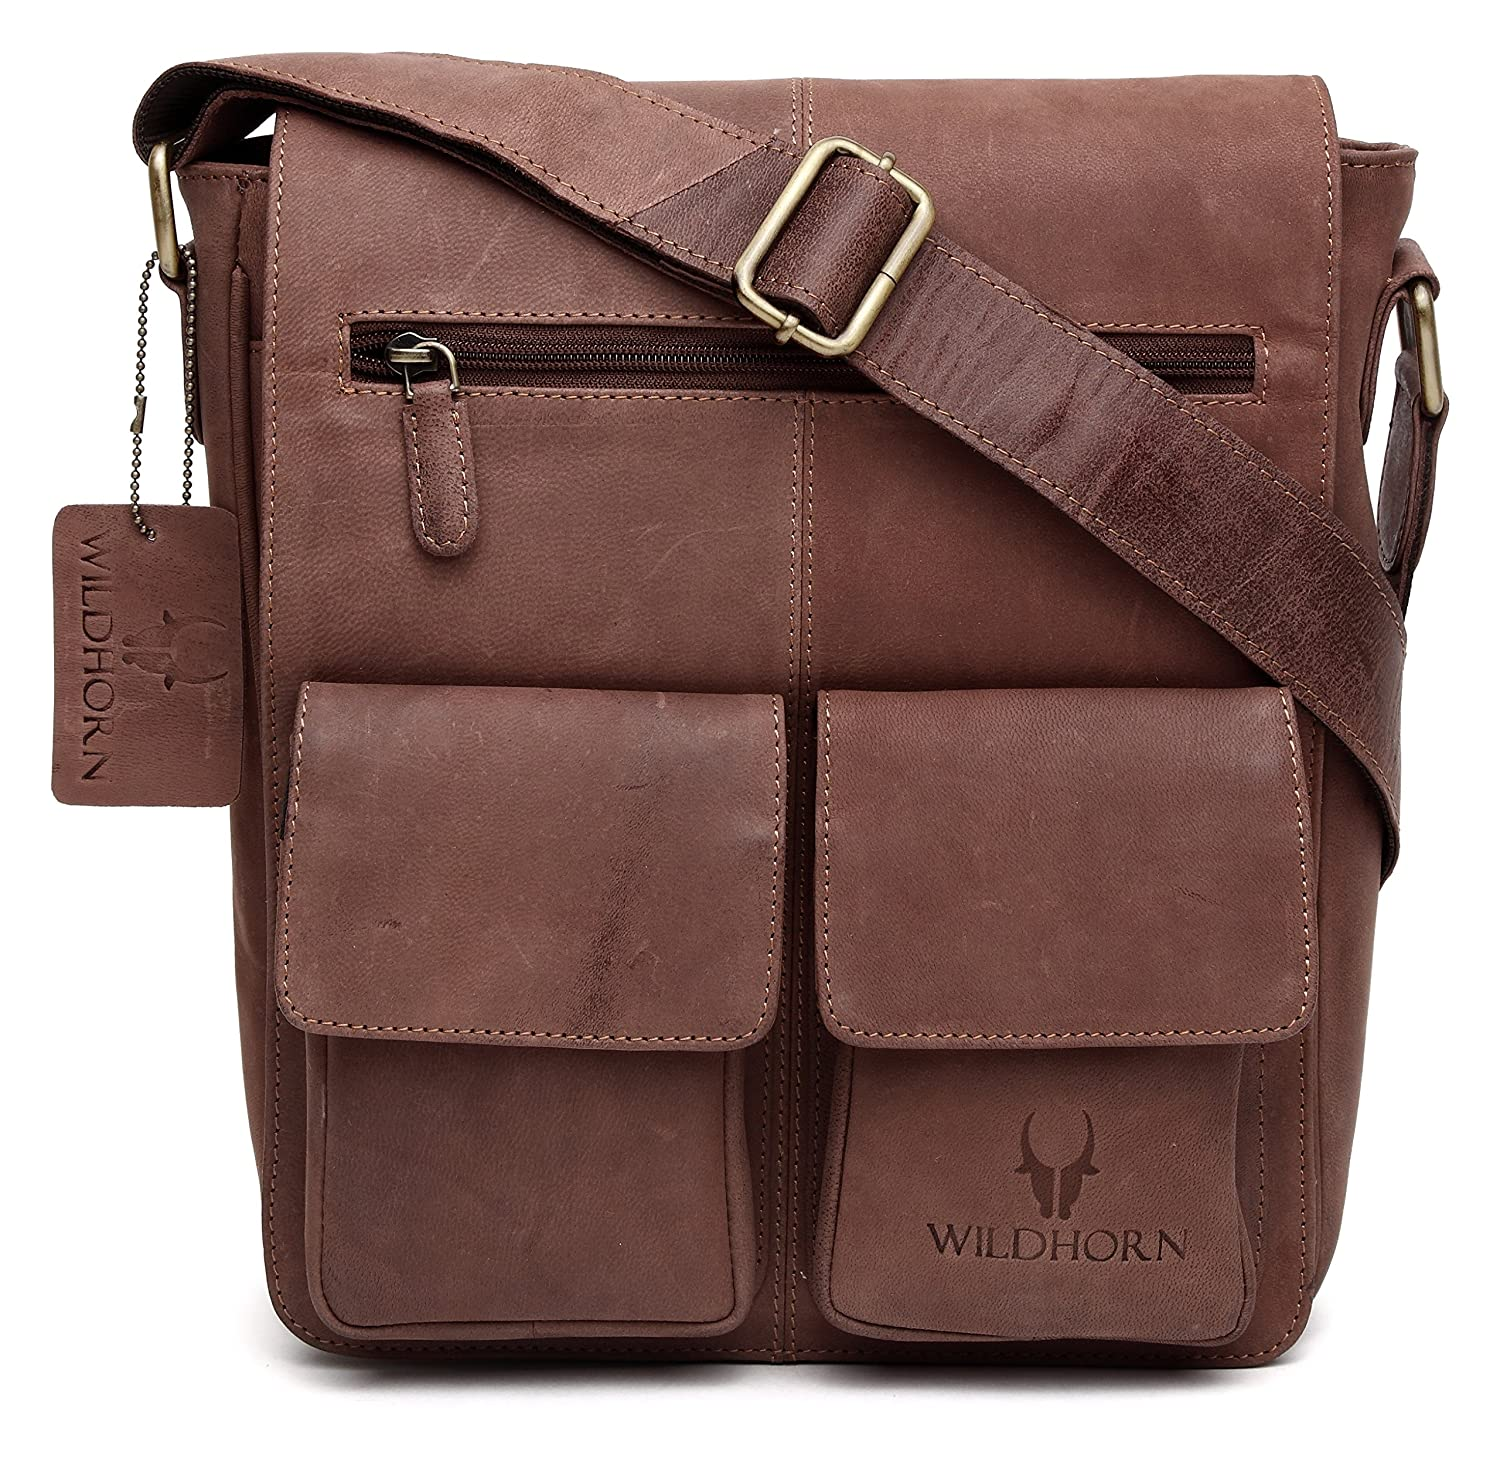 WildHorn Leather 27.94 cms Brown Messenger Bag (WHM231)  Amazon.in  Bags 631753fde3f0e